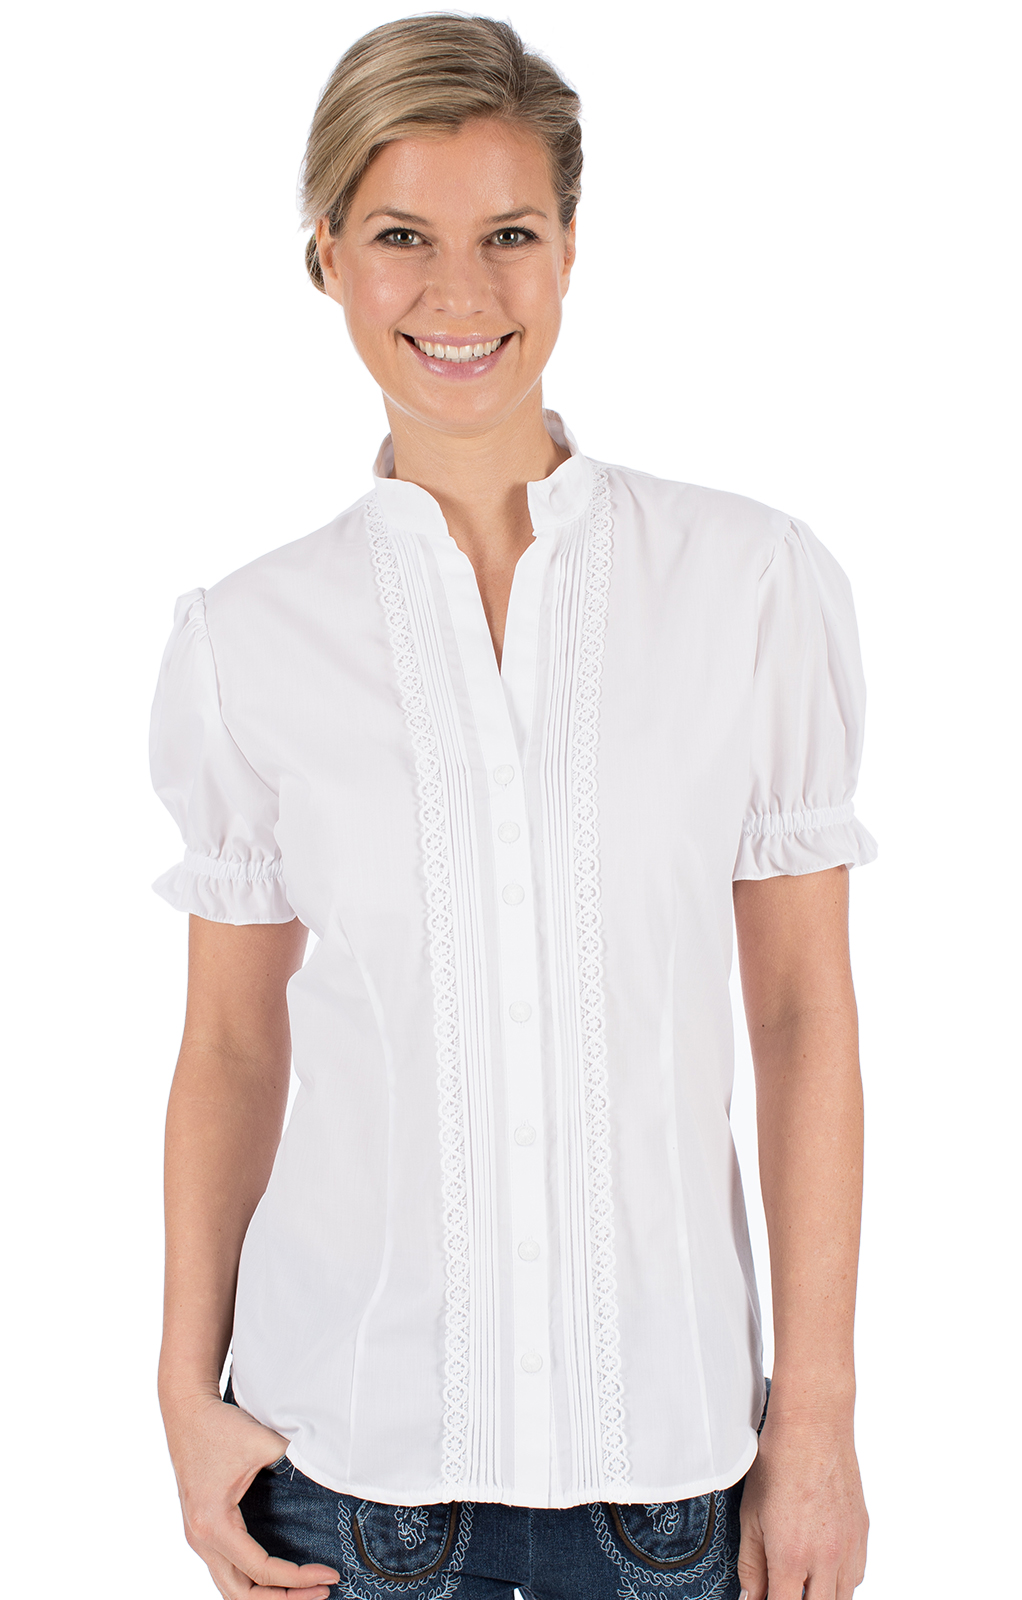 Traditional blouse IRMI white von OS-Trachten